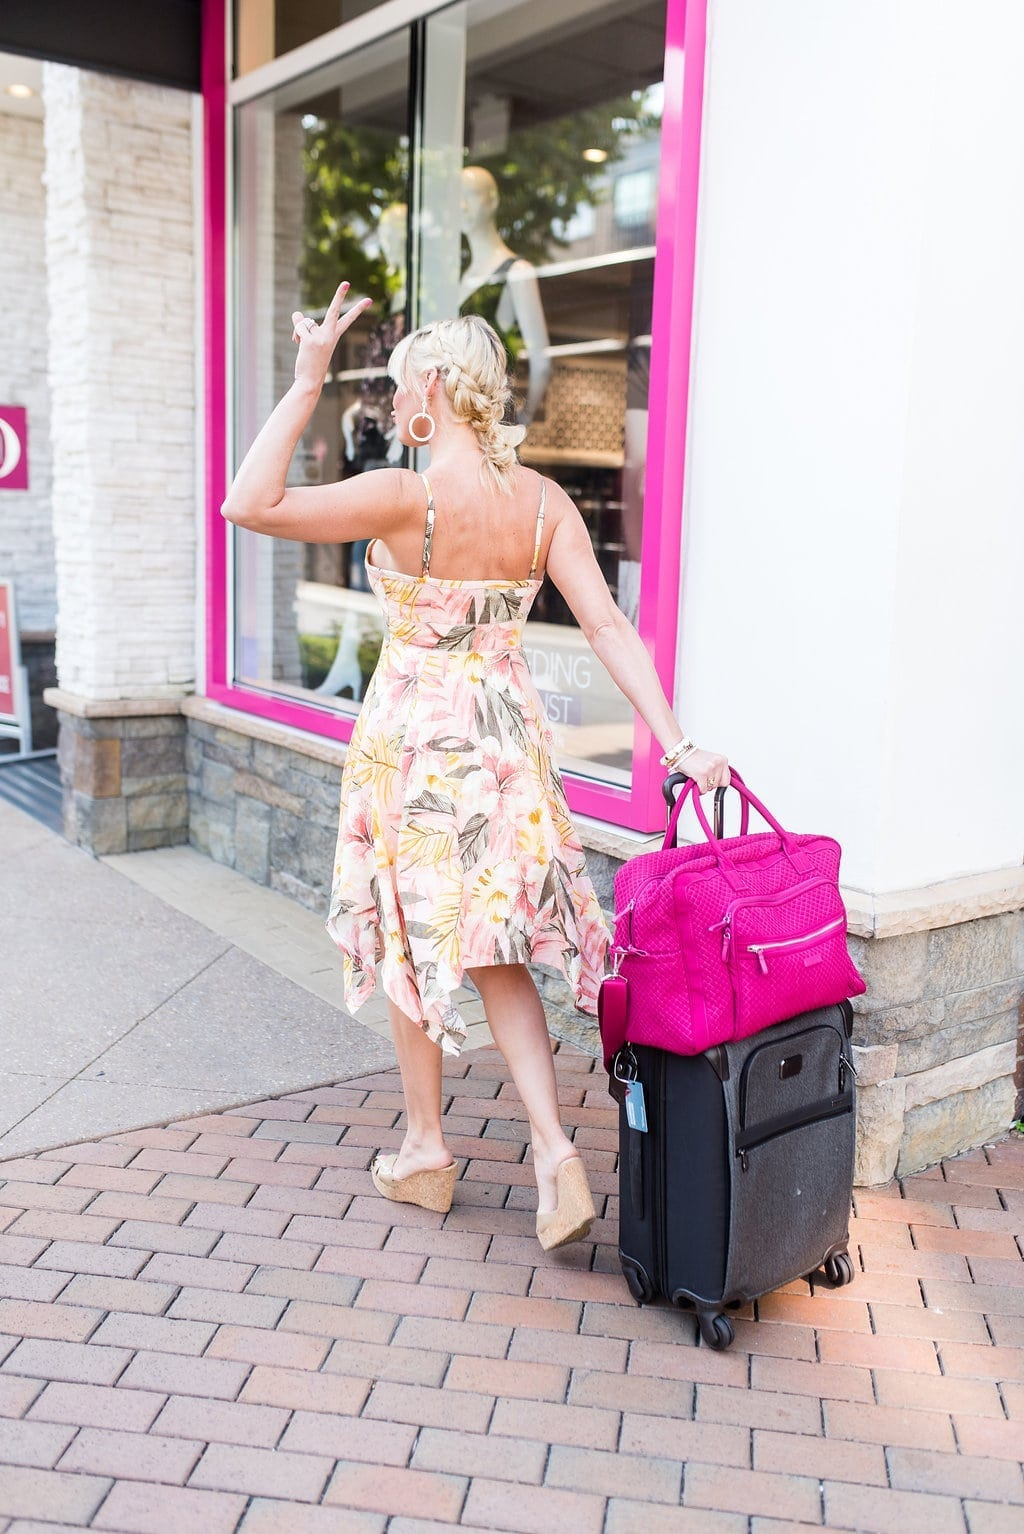 Vera Bradley Luggage and floral midi dress with braid hair updo.